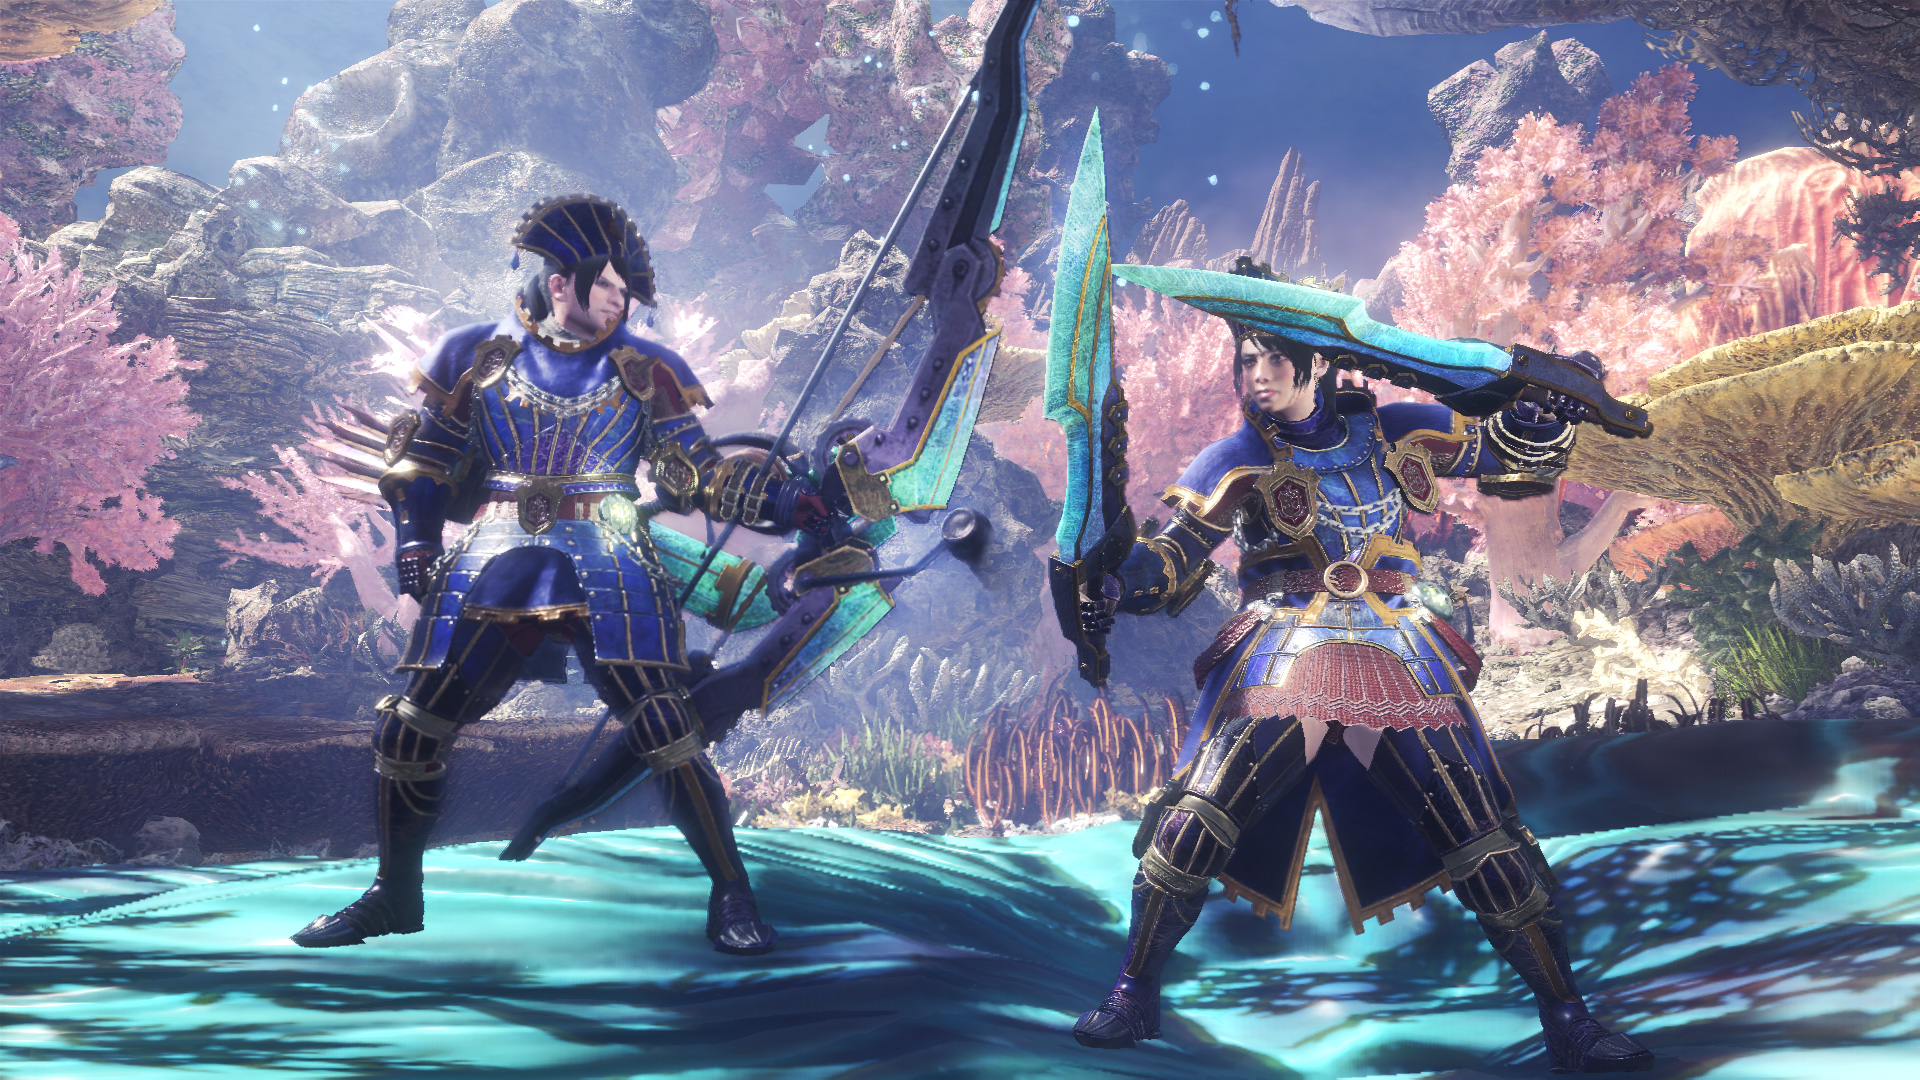 Capcom suddenly adds Lunastra to Monster Hunter: World on May 30